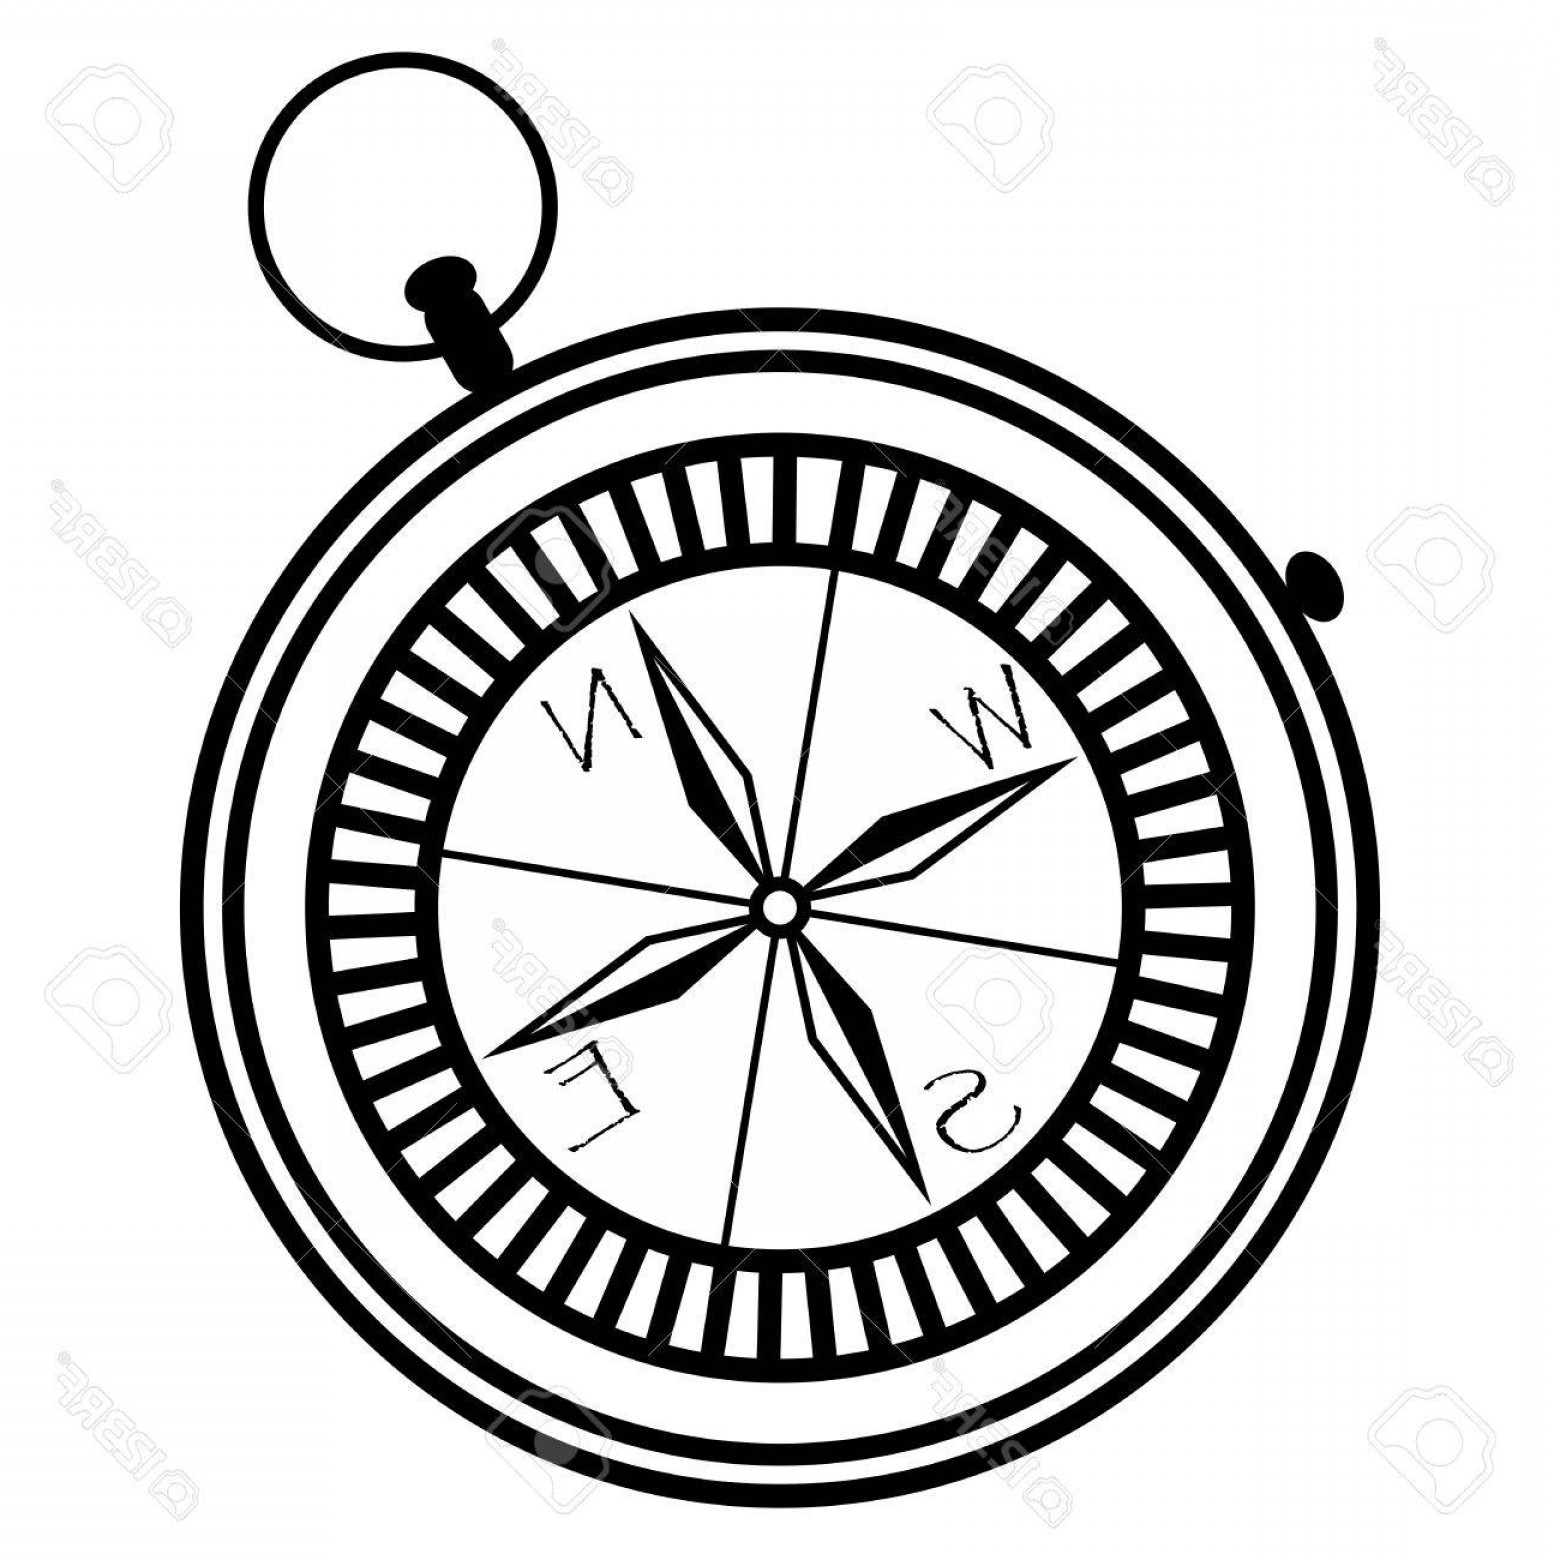 Simple Compass Vector Black And White: Photostock Vector Simple Nautical Compass Showing Directions West East South North In Black And White In Geometric Mon